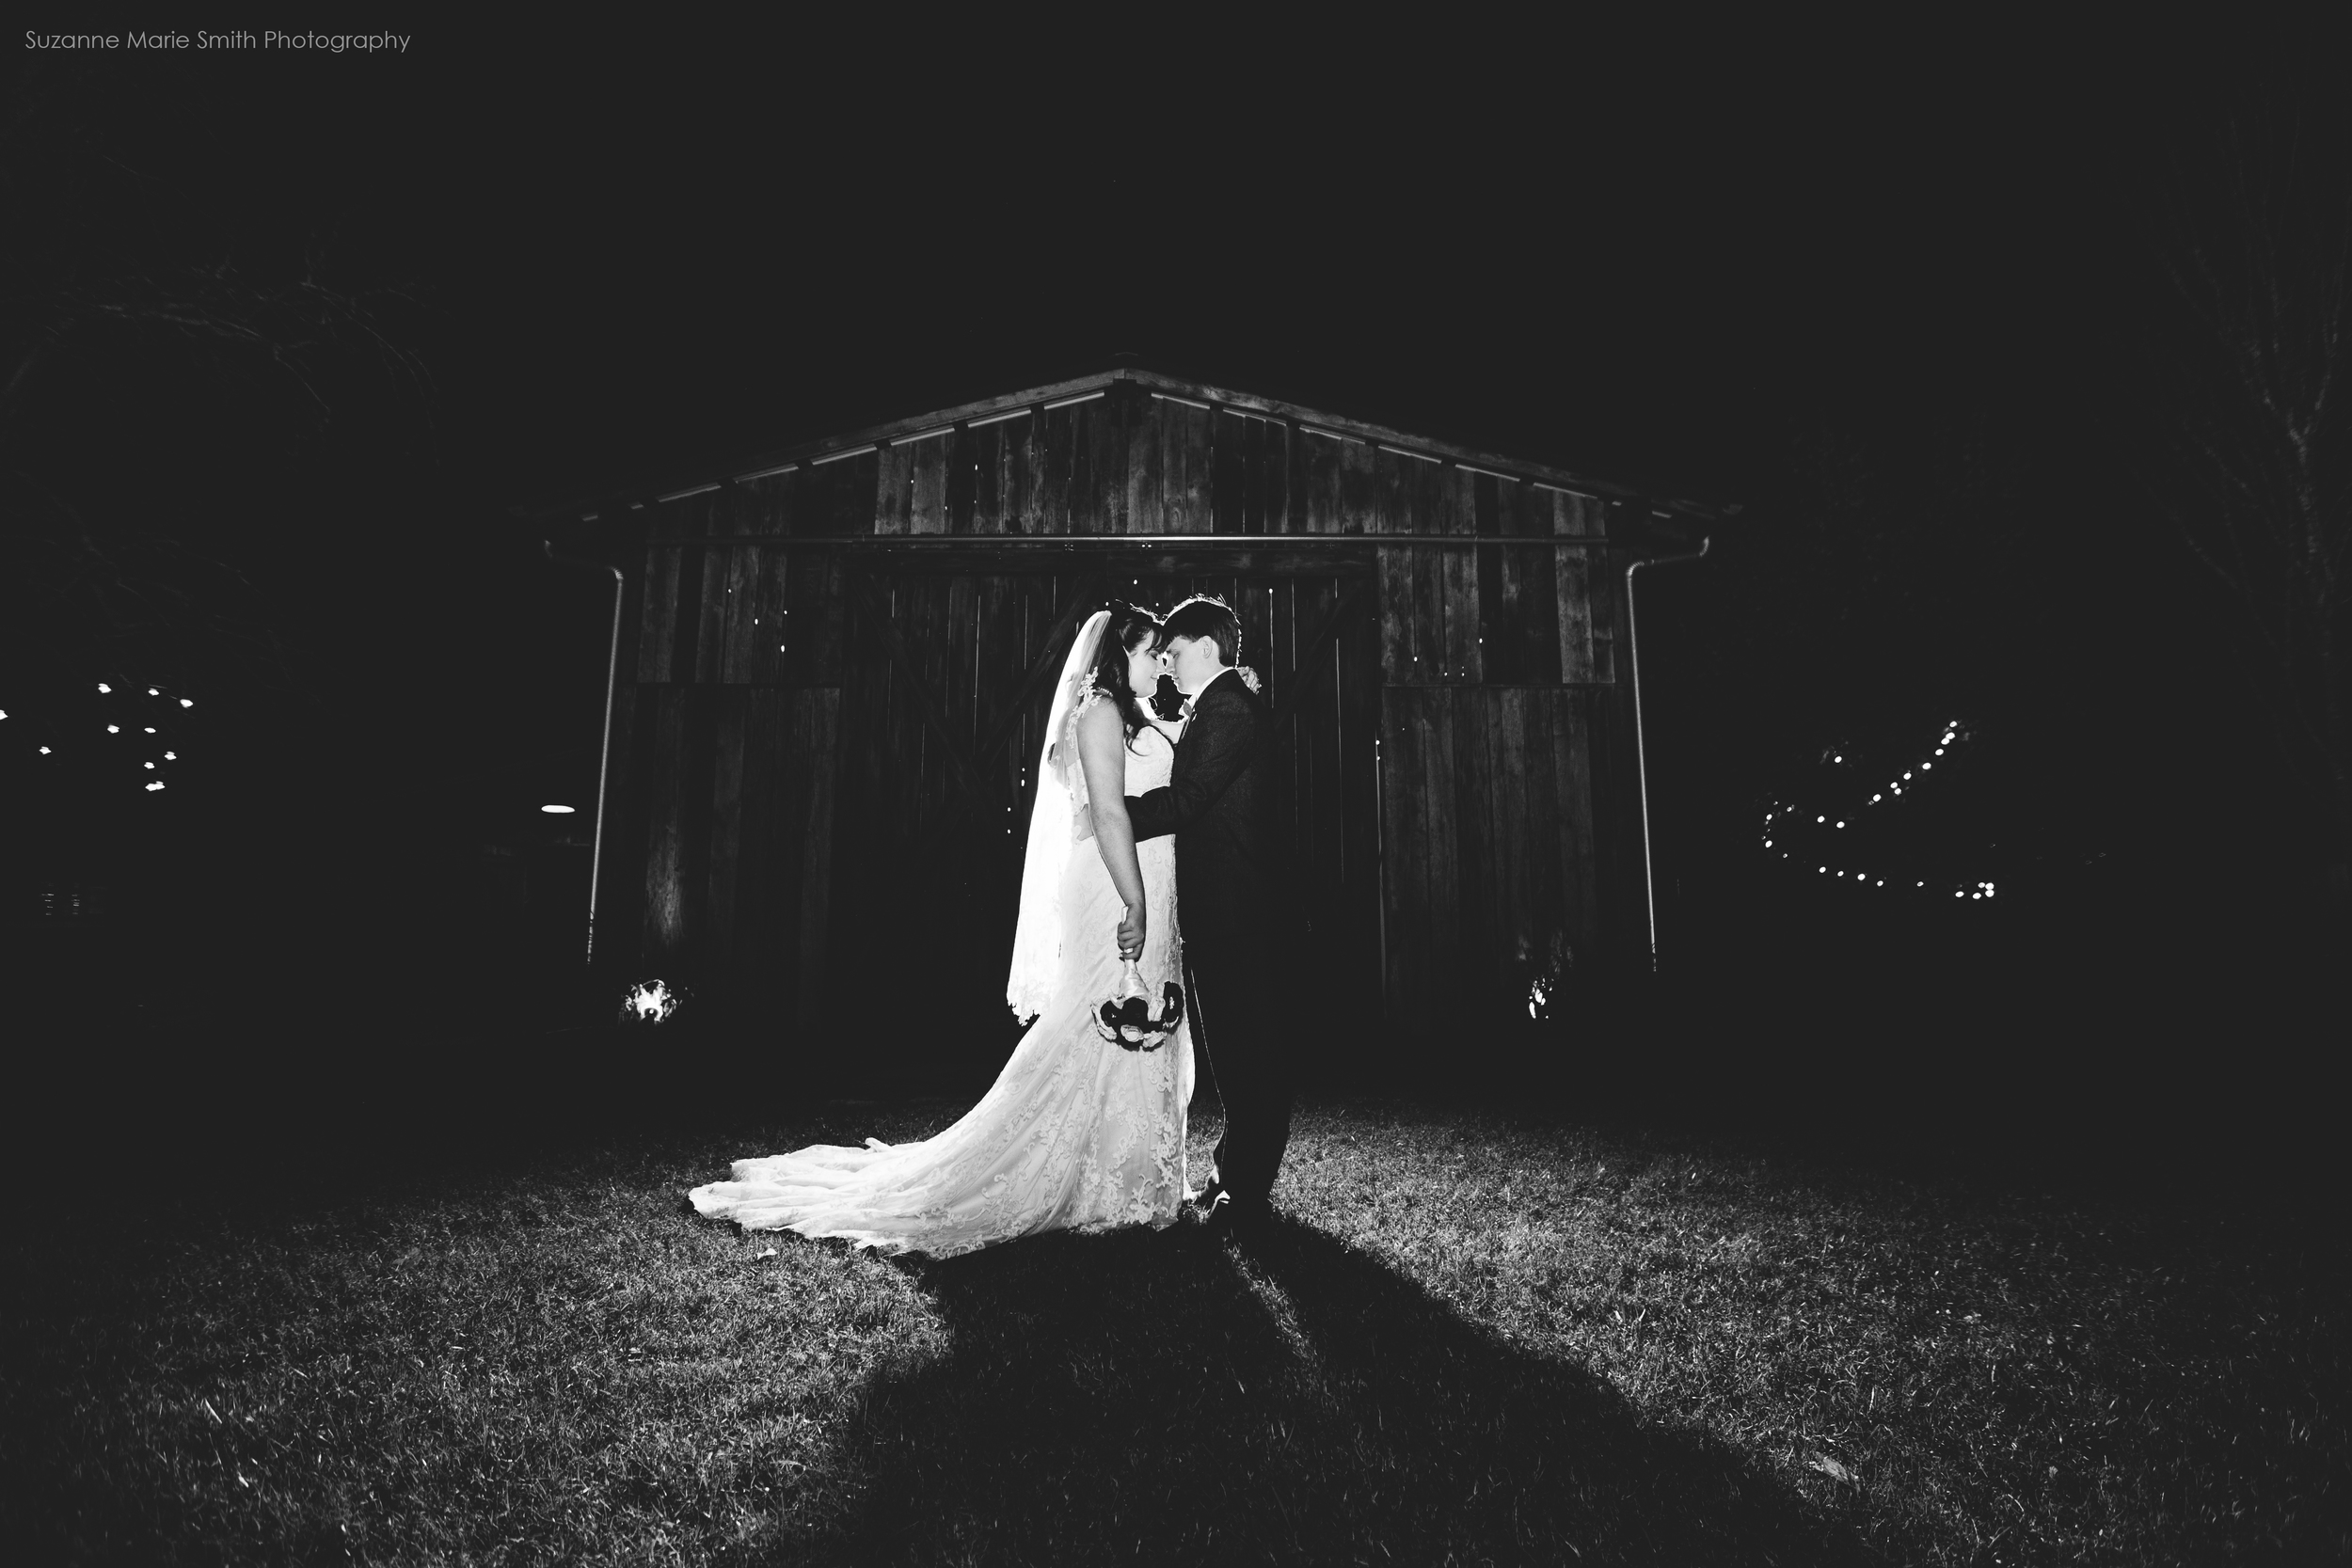 A night portrait outside the barn